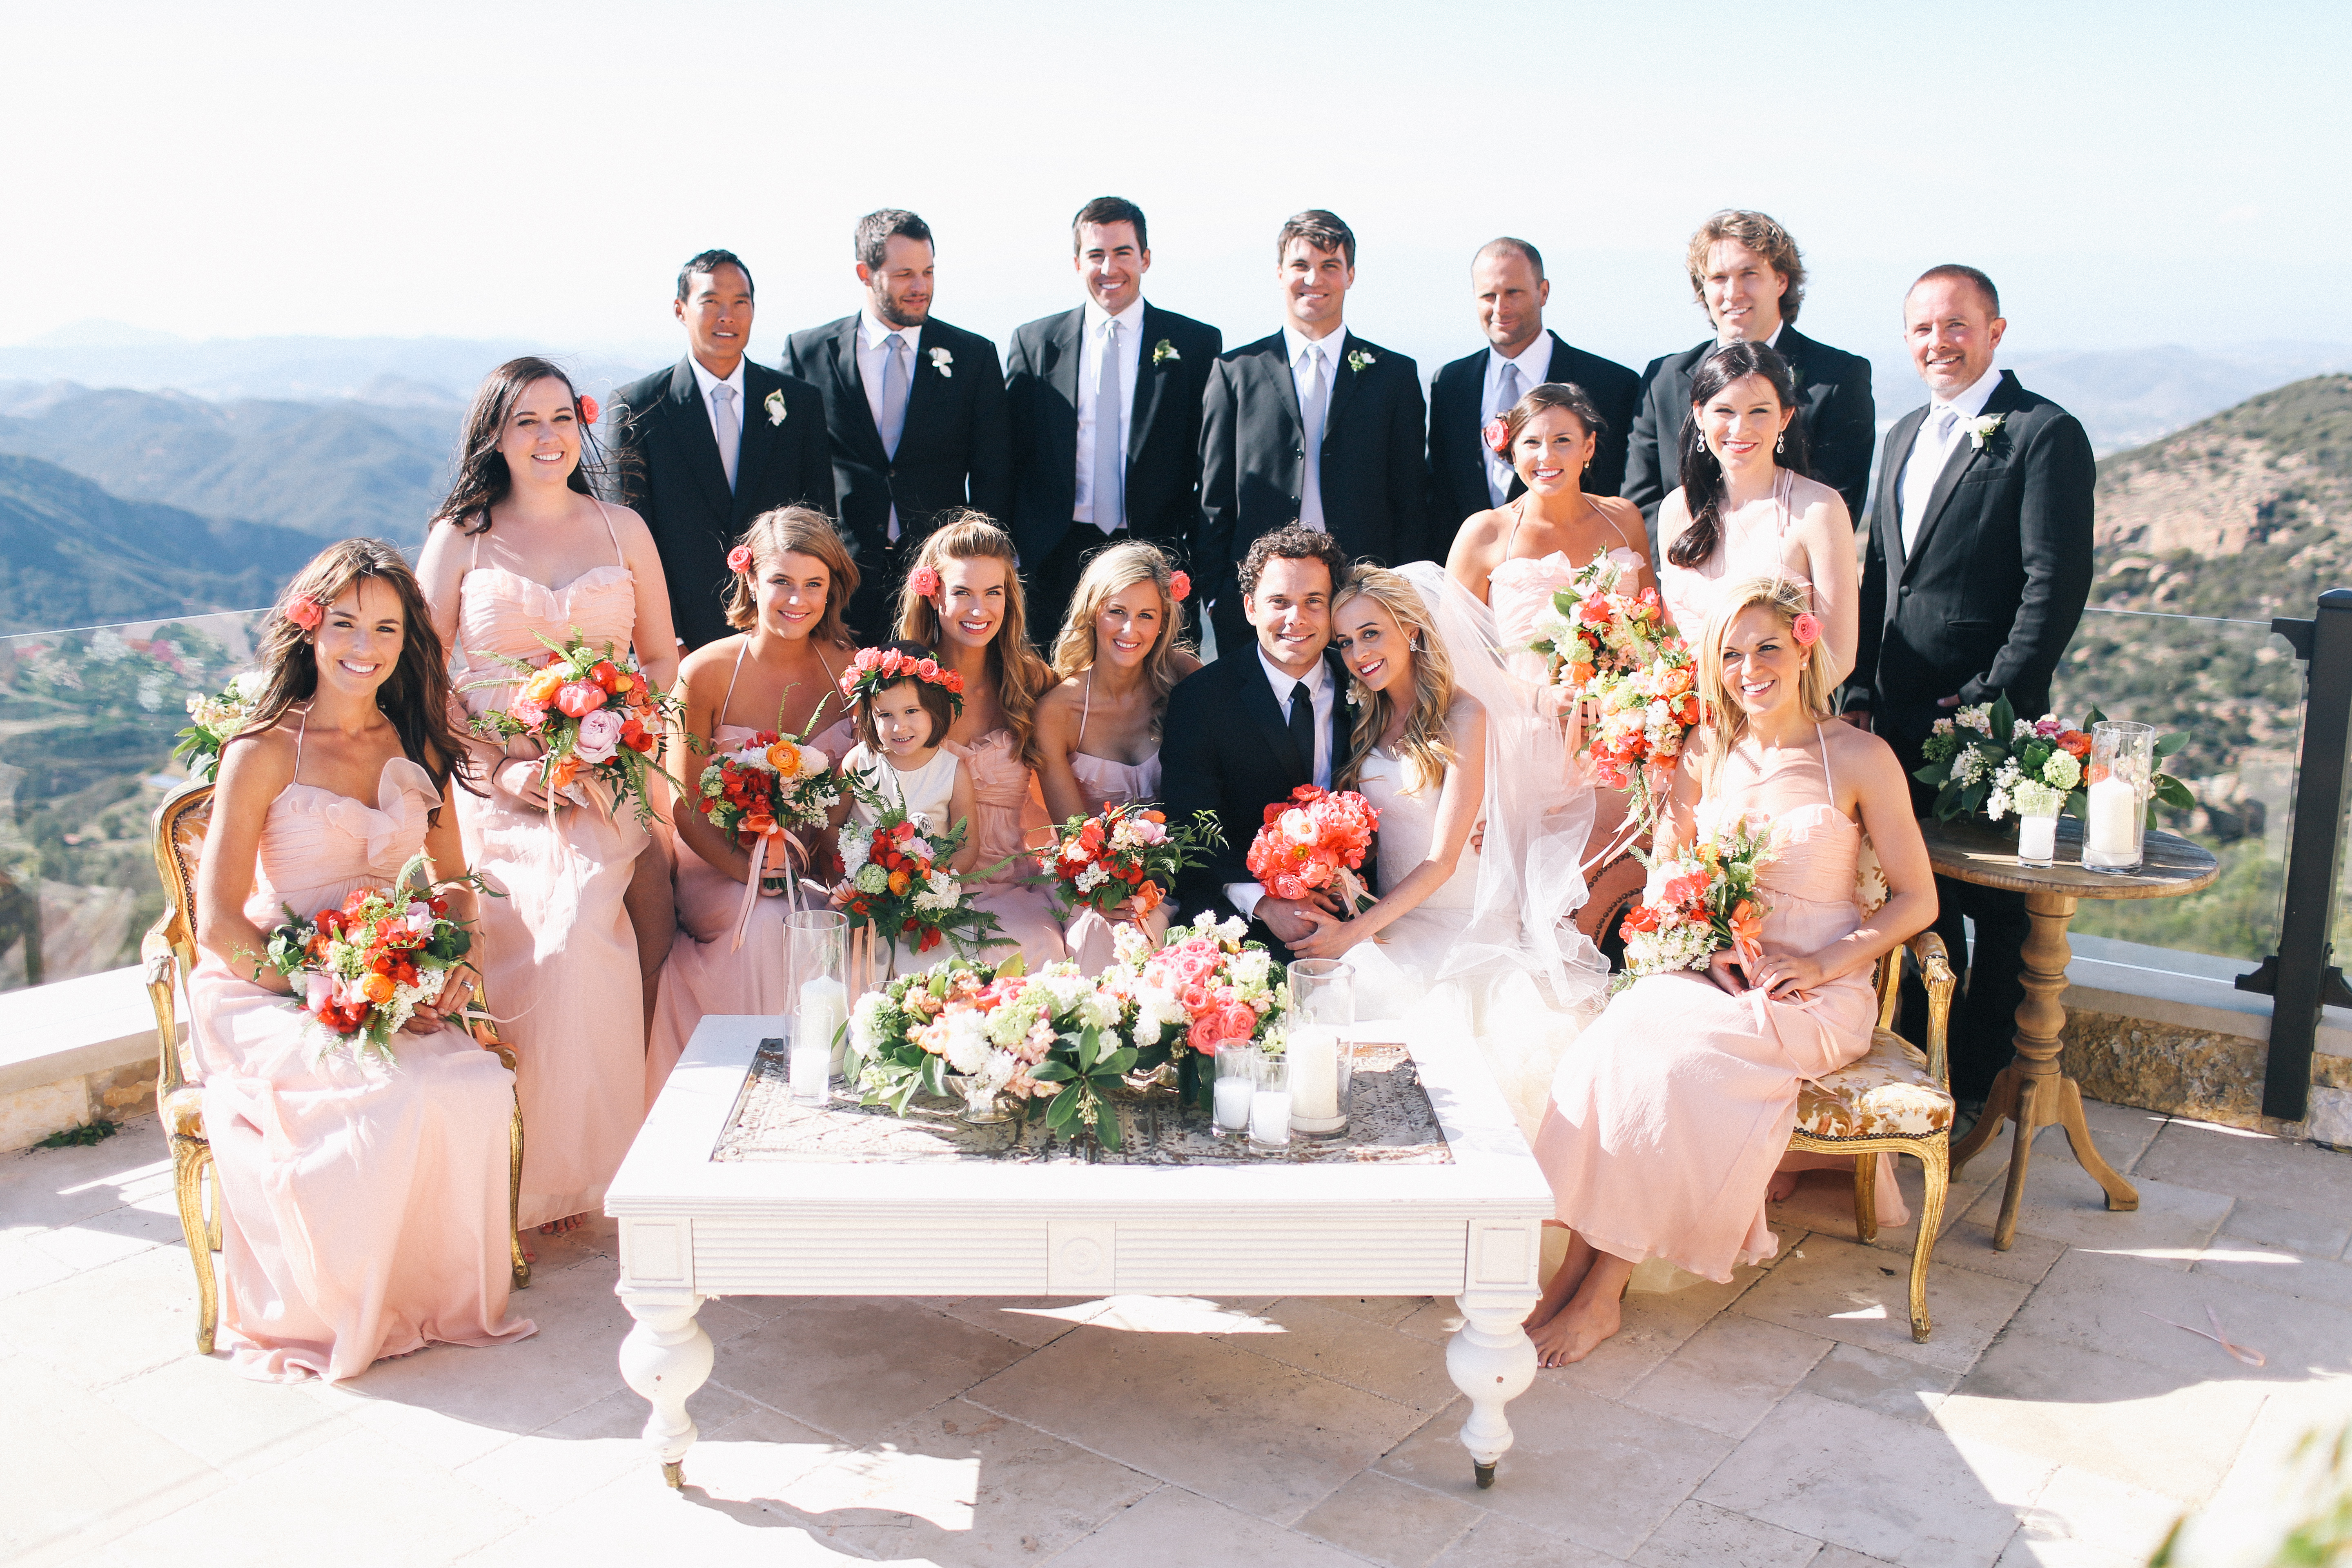 Malibu Wedding with Bash Please, Max Wanger and Found Vintage Rentals